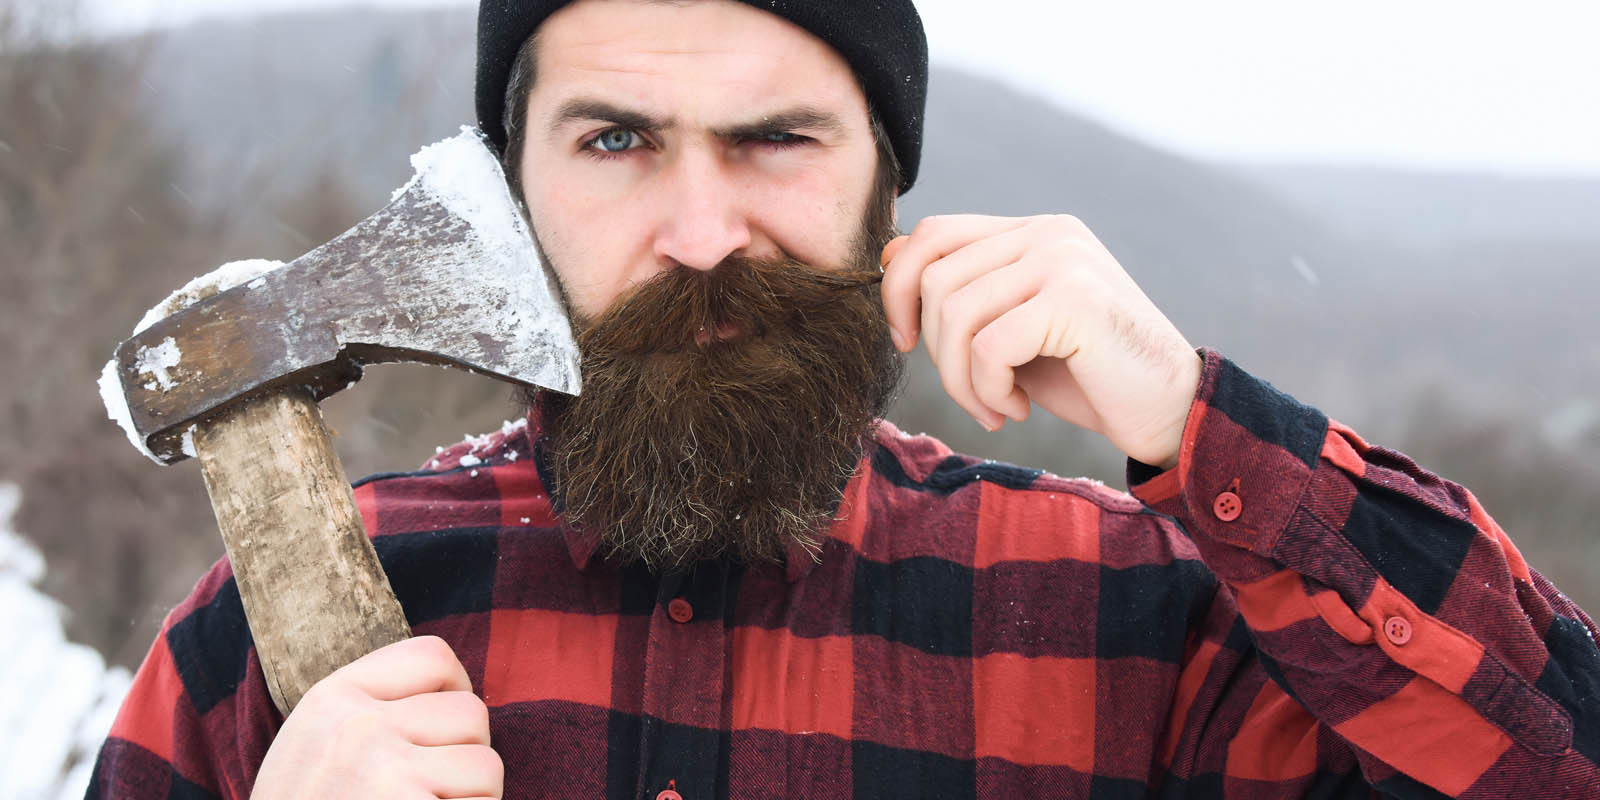 Paul Bunyan halloween costume for men with beards